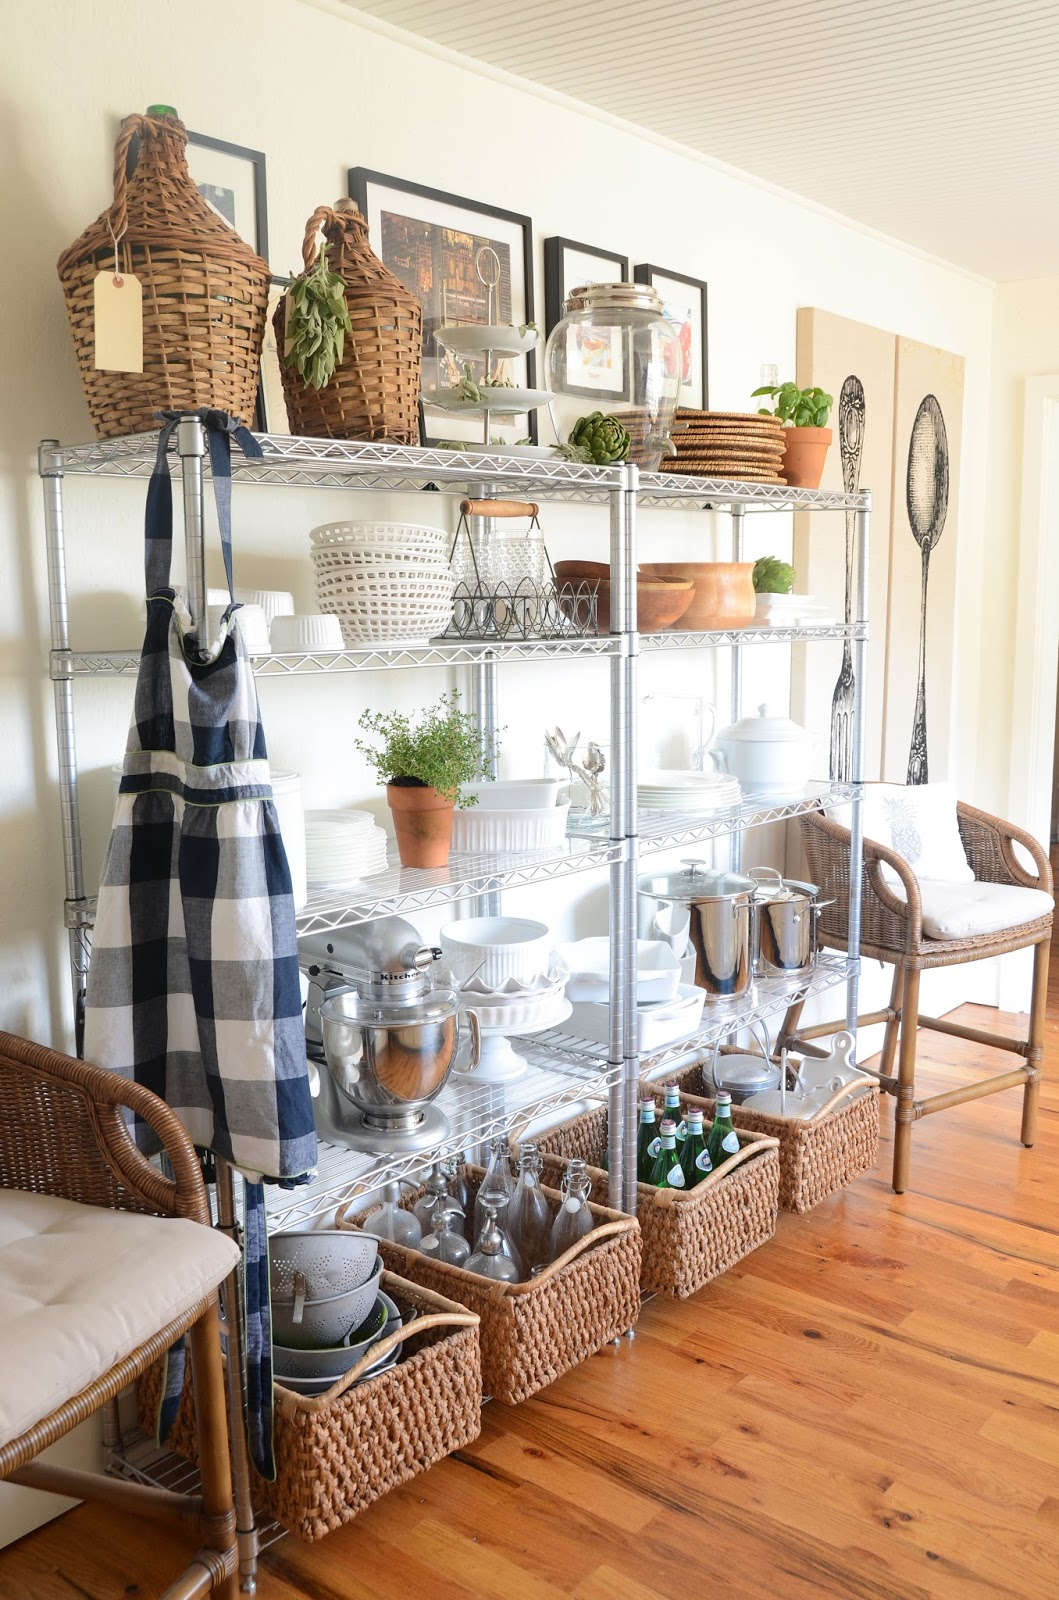 IRON amp TWINE Happy Spring Blogger Stylin Home Tours 2015